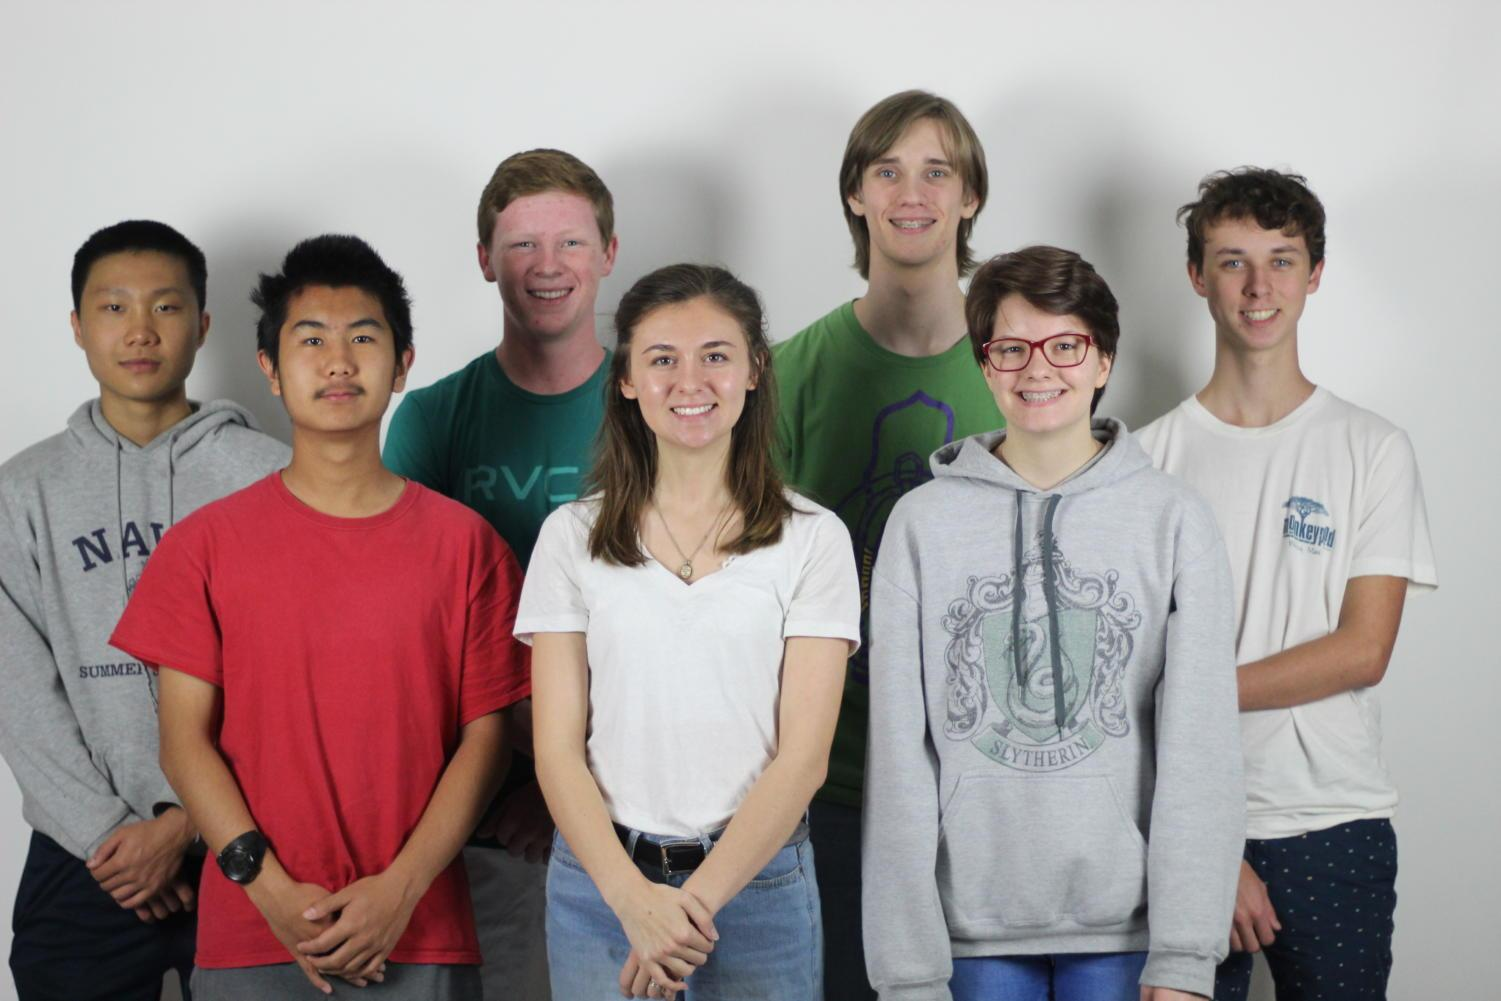 Students who competed at Prosper High School the past weekend will compete at the state tournament. Not pictured: sophomore Luke Wheatley, senior Anna Rouse, sophomore Ariel Kokoricha, senior Hannah Ortega.